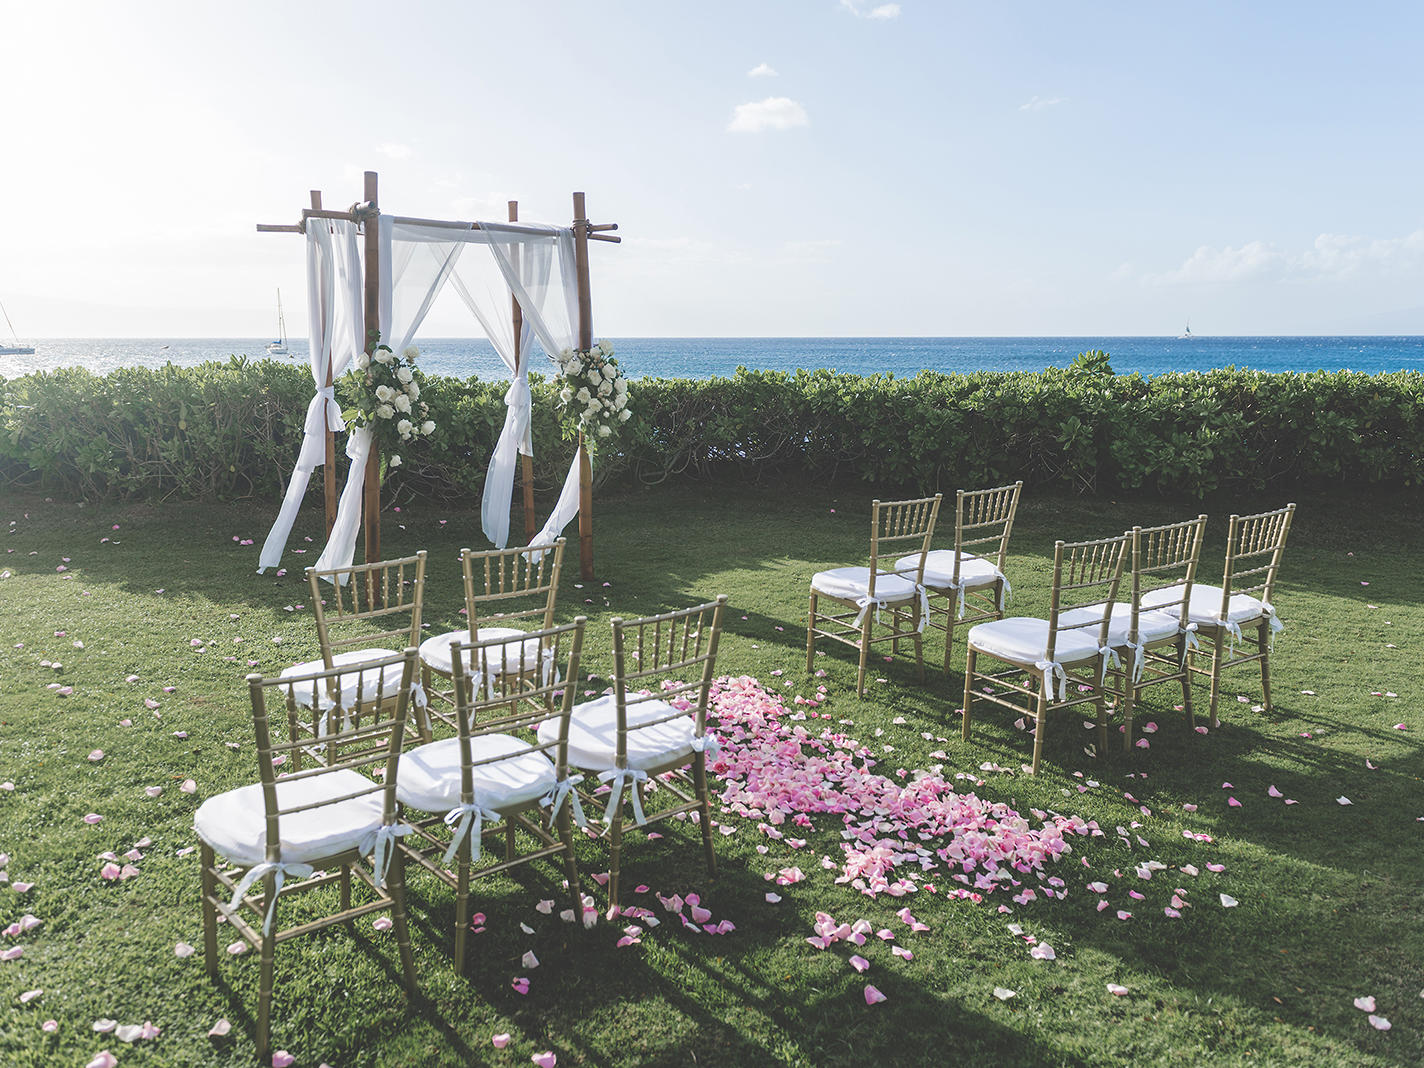 outdoor wedding venue in tropical setting with ocean